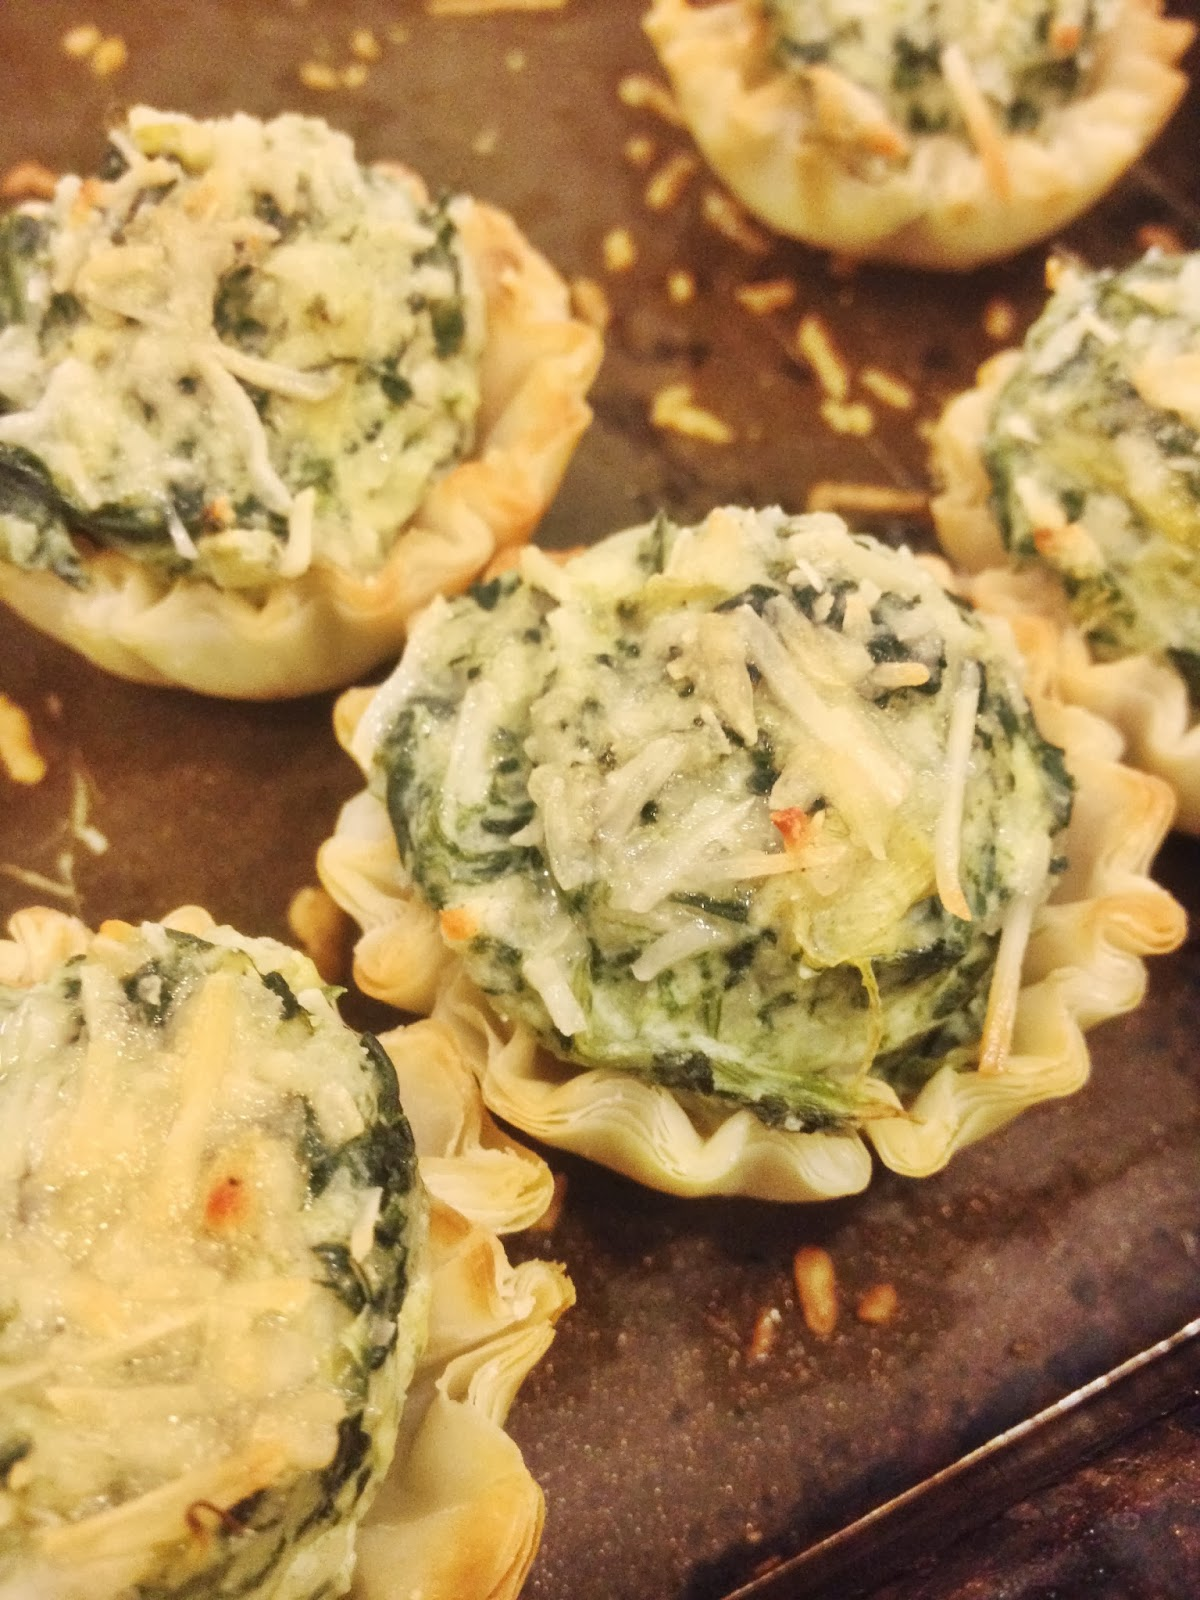 Challenger sweets spinach artichoke canap s for How to make canape shells at home